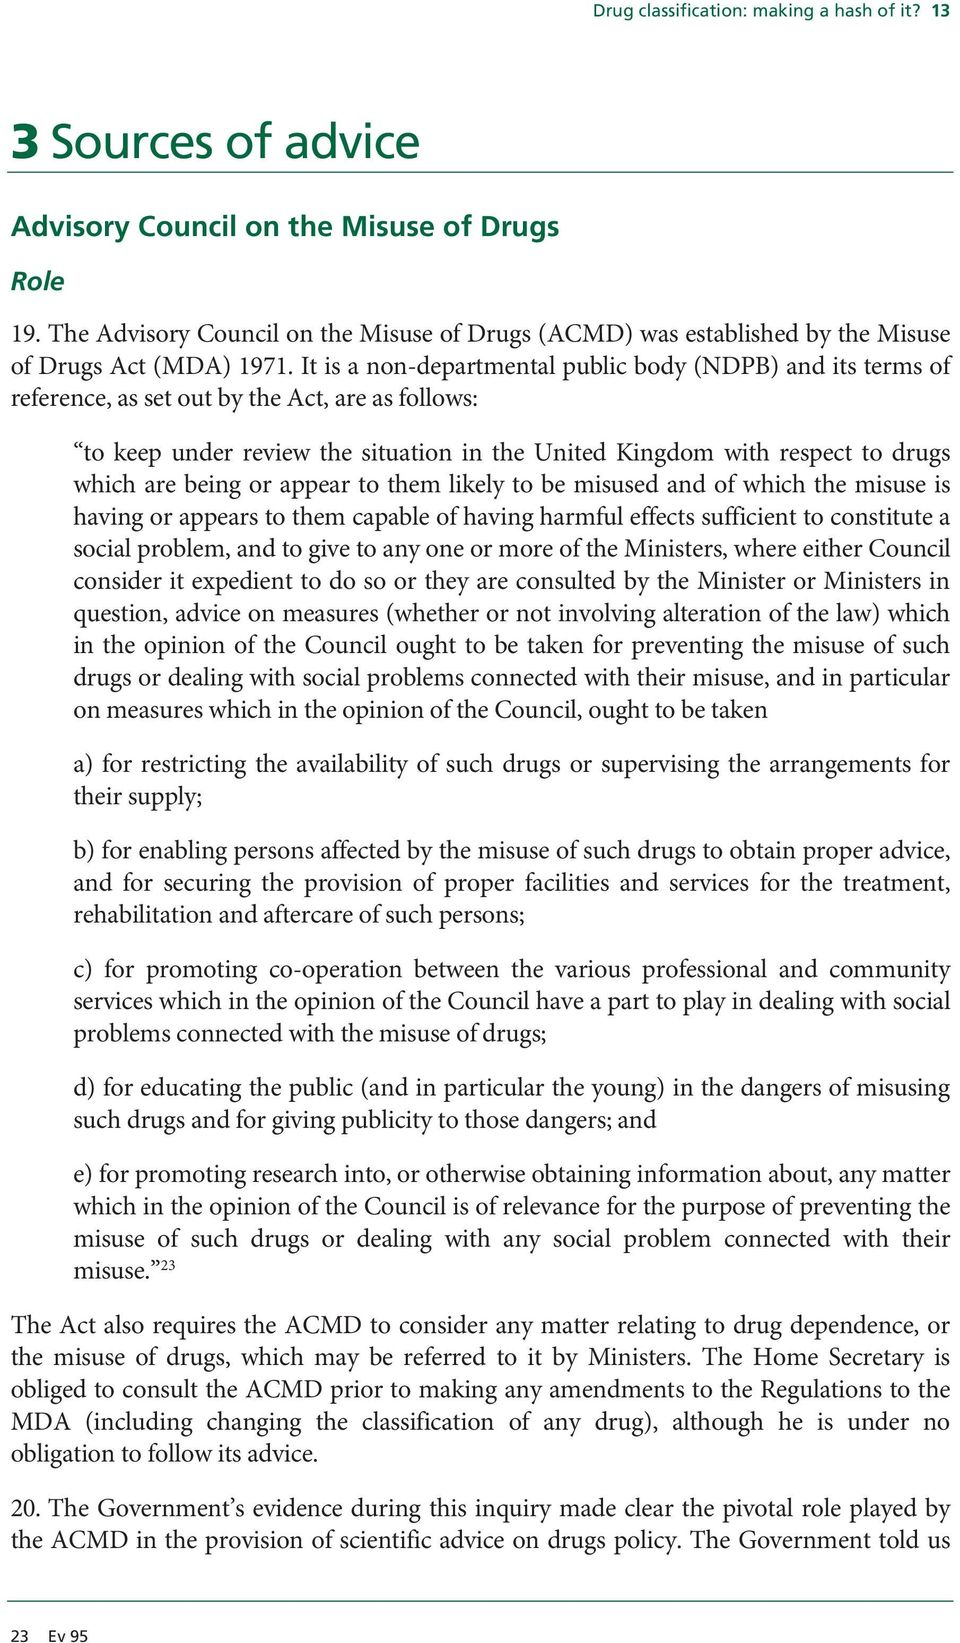 It is a non-departmental public body (NDPB) and its terms of reference, as set out by the Act, are as follows: to keep under review the situation in the United Kingdom with respect to drugs which are